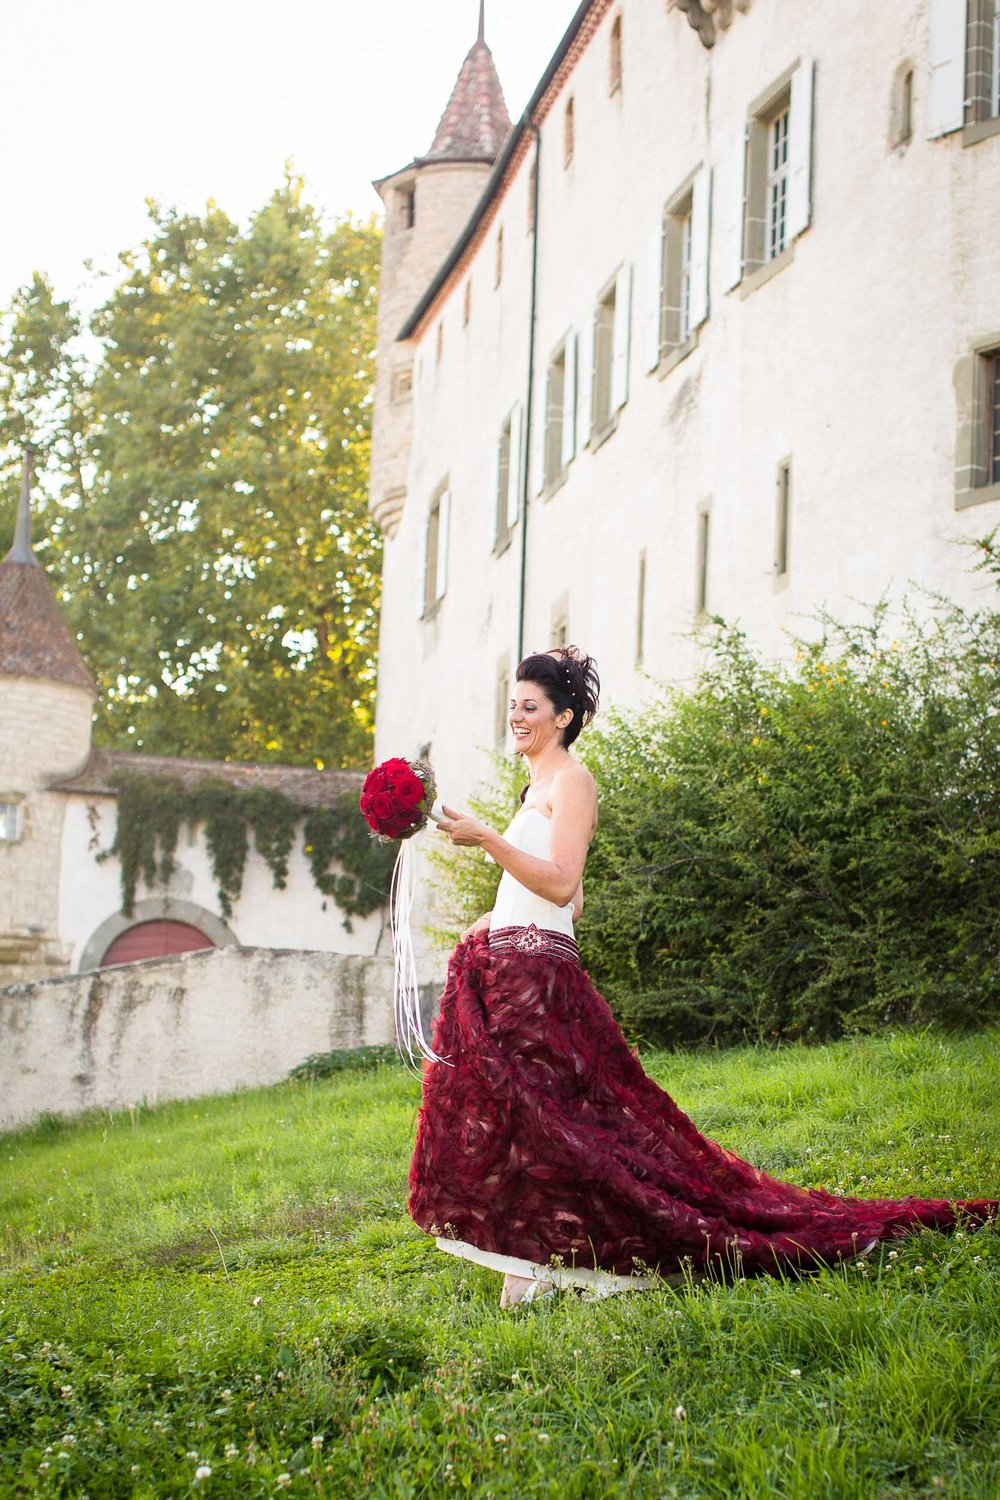 Château d'Oron castle wedding 09